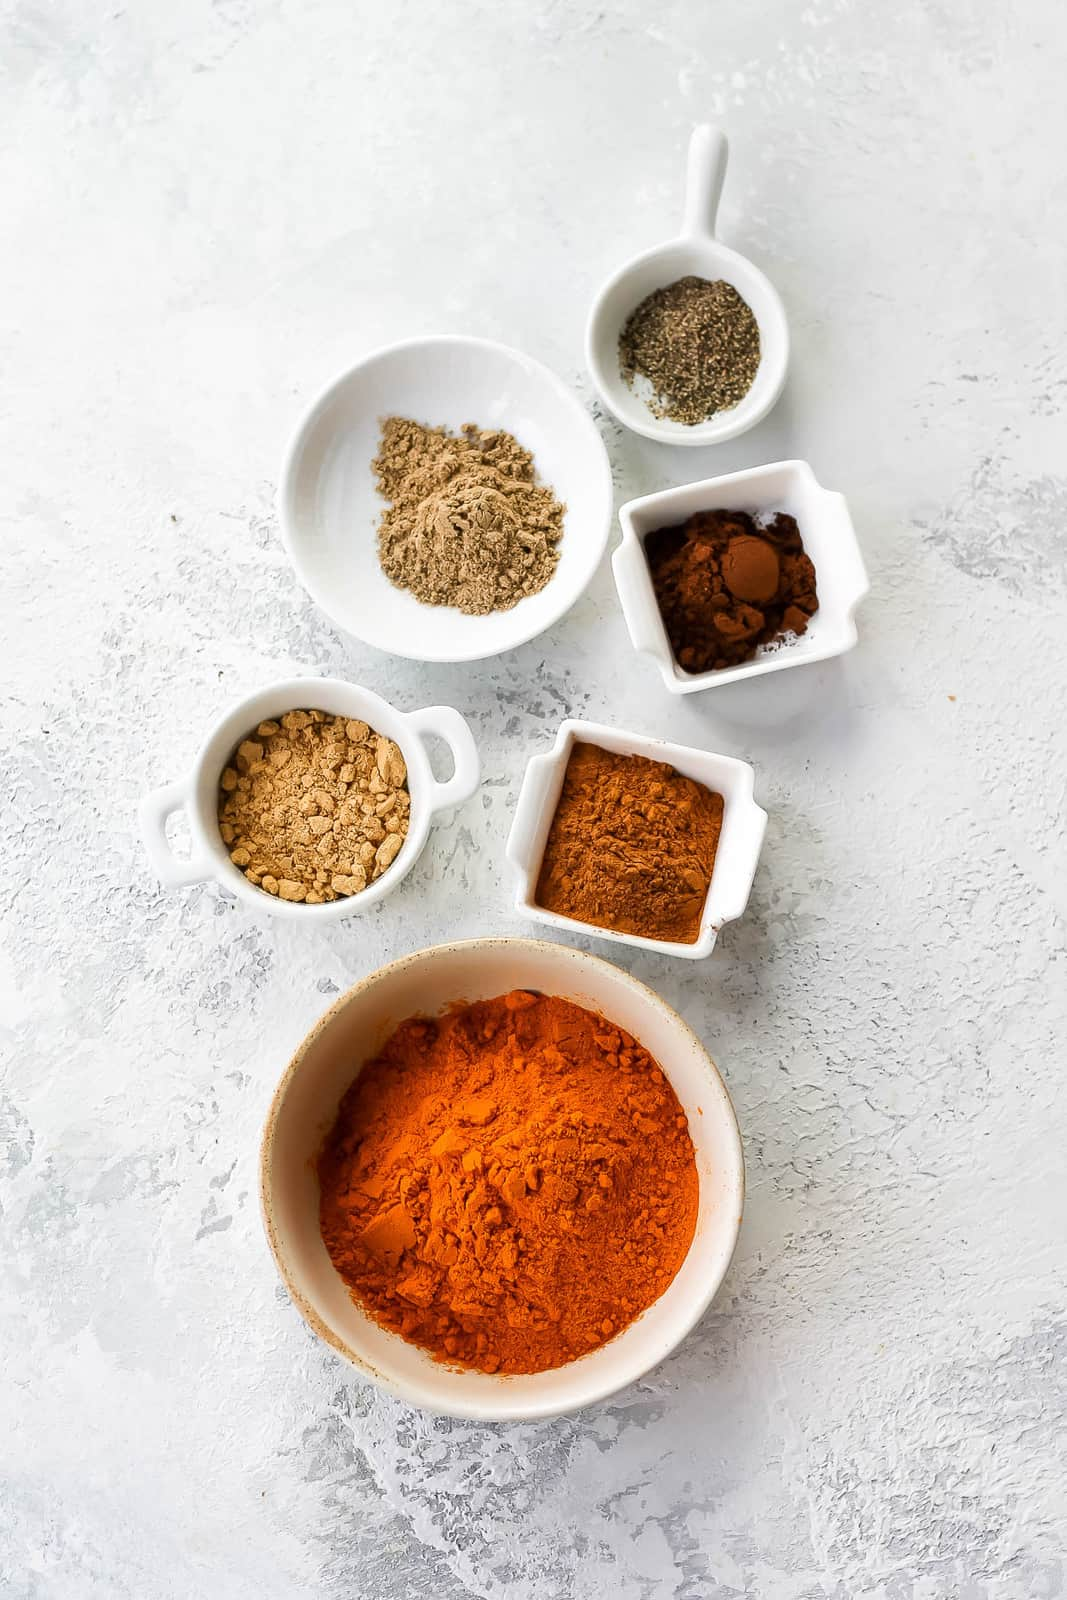 turmeric, cinnamon, ginger, cardamom, cloves and black pepper on a grey background